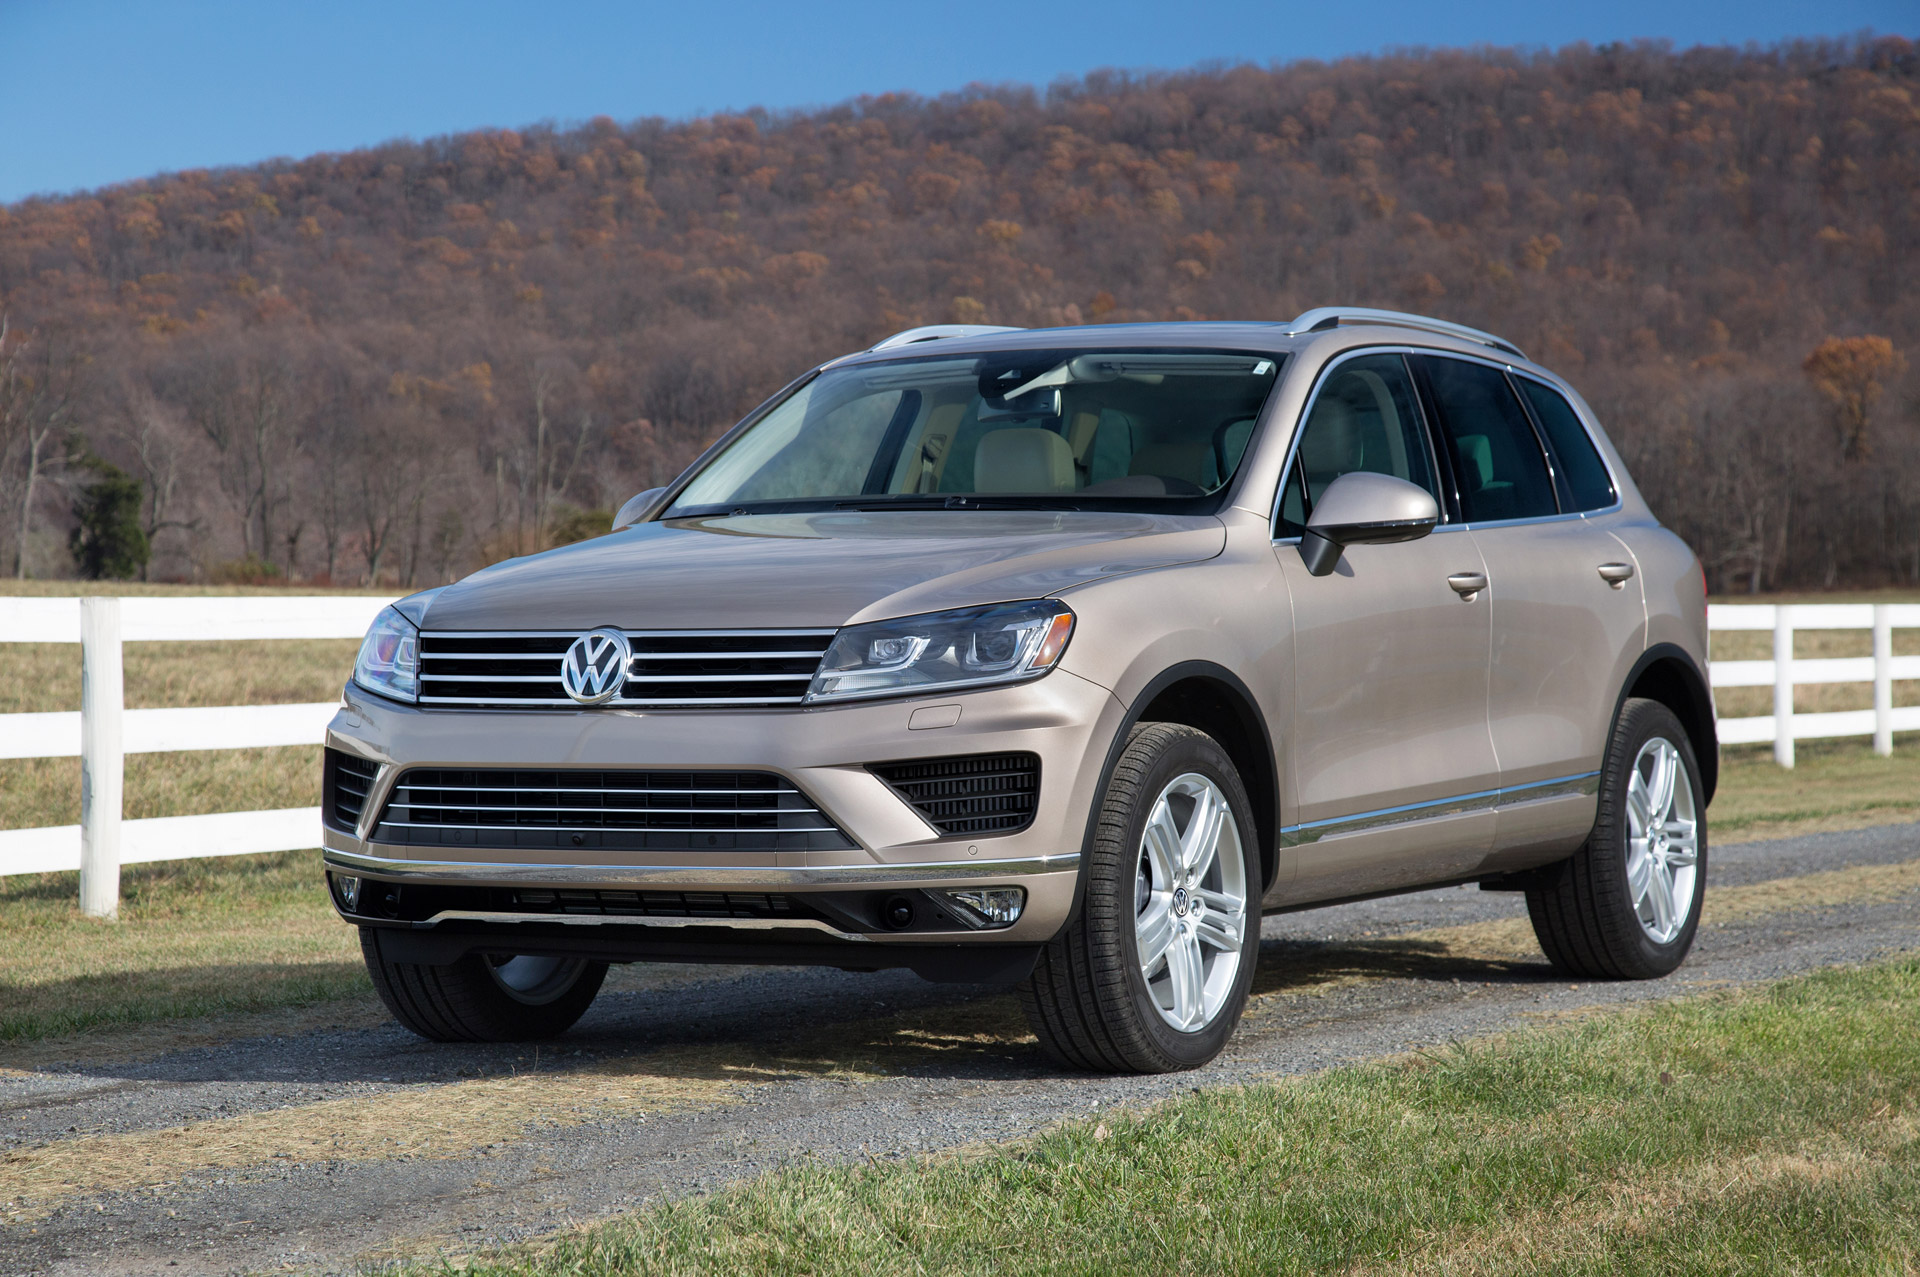 2016 volkswagen touareg_100521450_h 2017 volkswagen touareg preview 2014 touareg fuse box diagram at bayanpartner.co